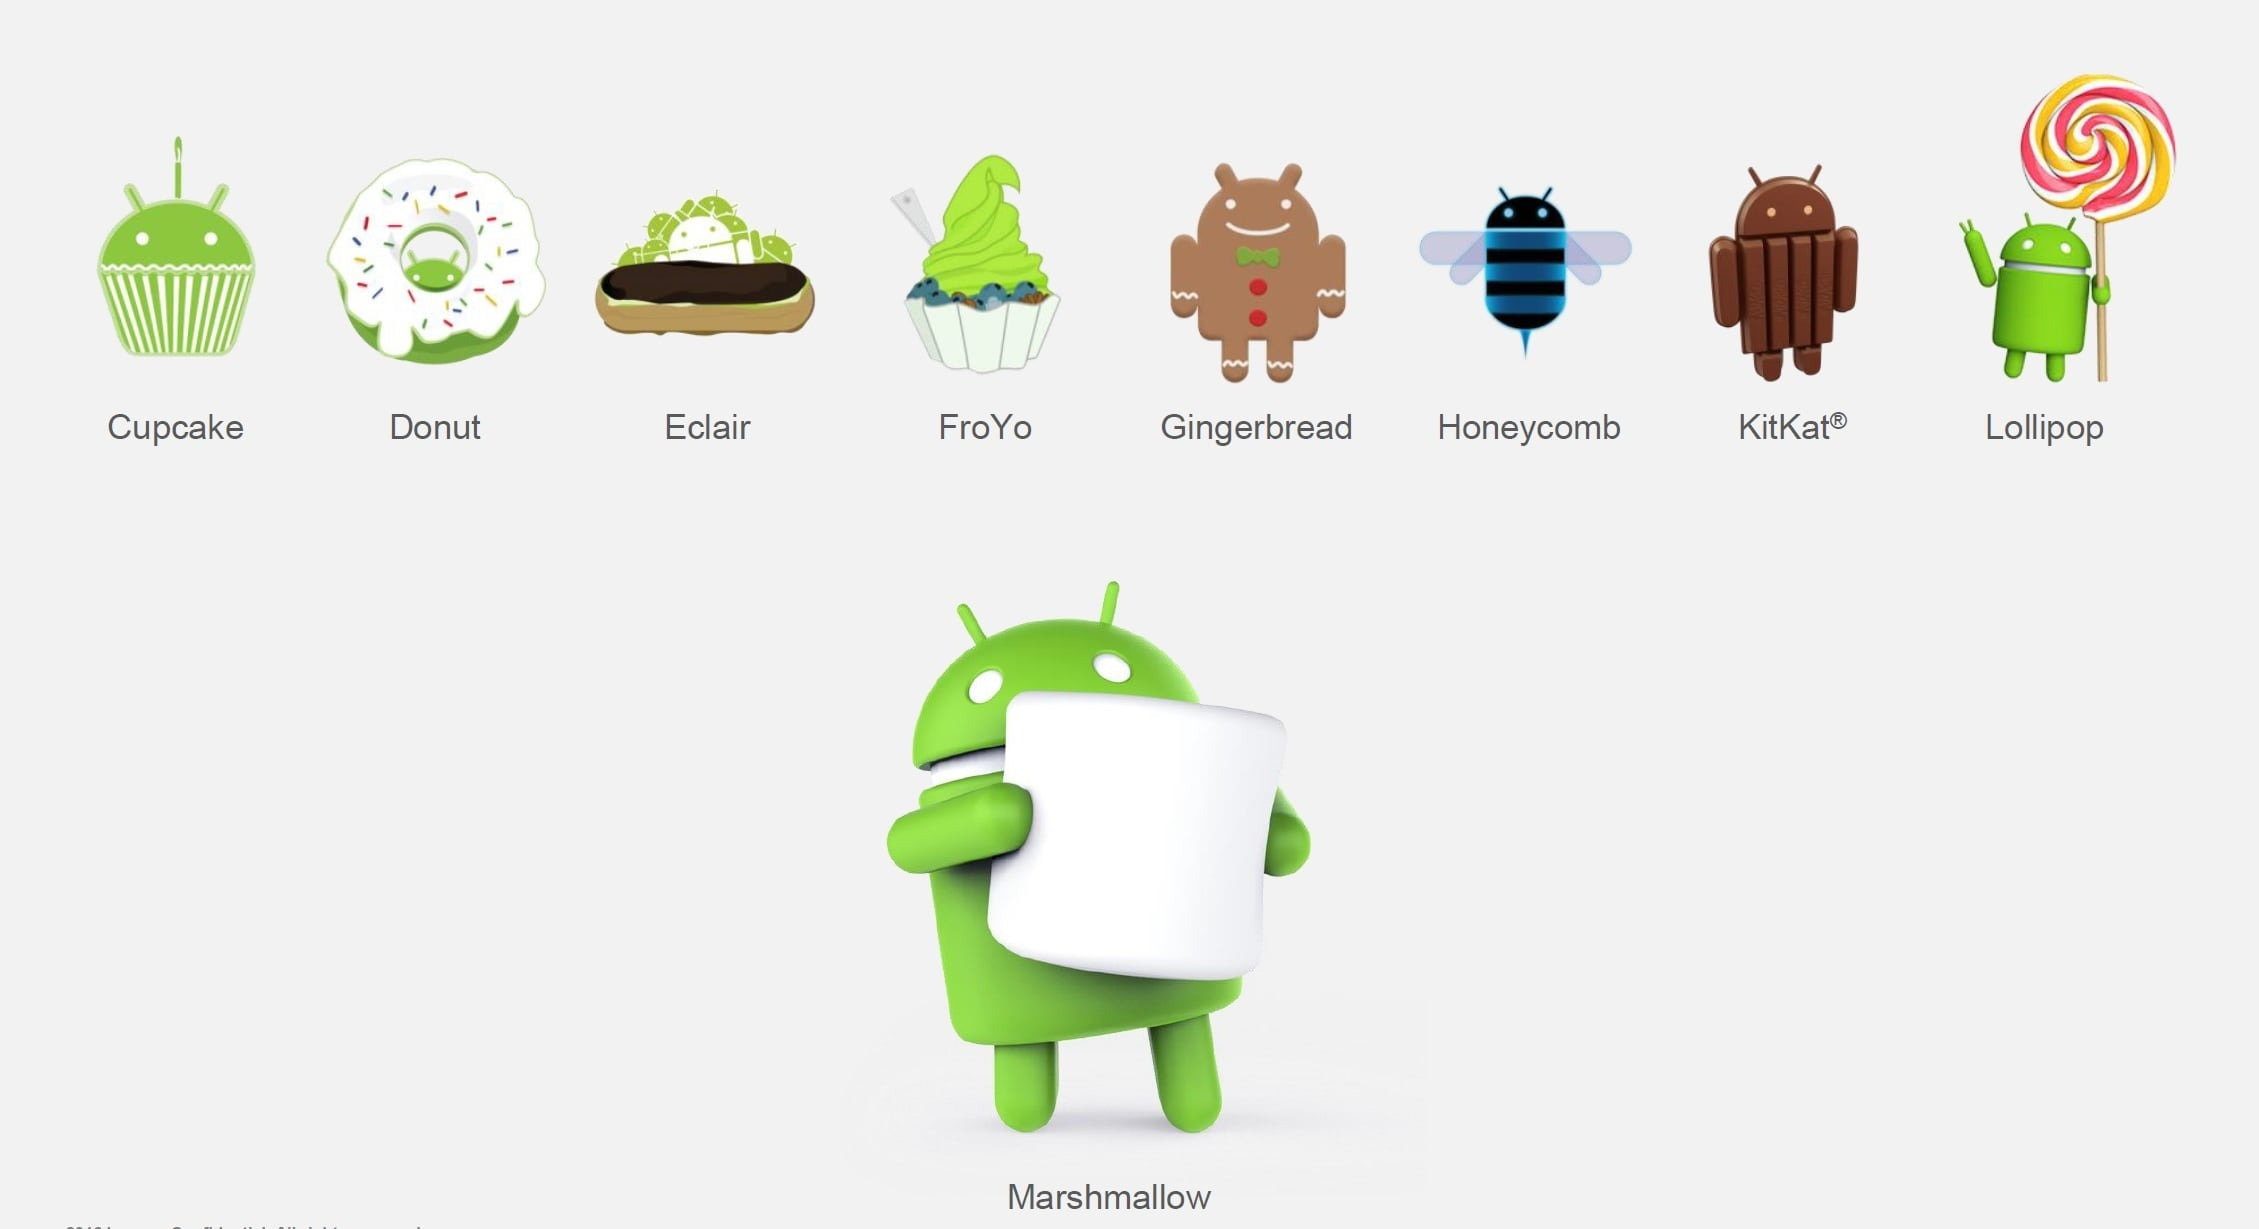 Android-Cupcake-Android-Donut-Android-Eclair-Android-Froyo-Android-Gingergread-Android-Honeycomb-Android-KitKat-Android-Lollipop-Android-Marshmallow